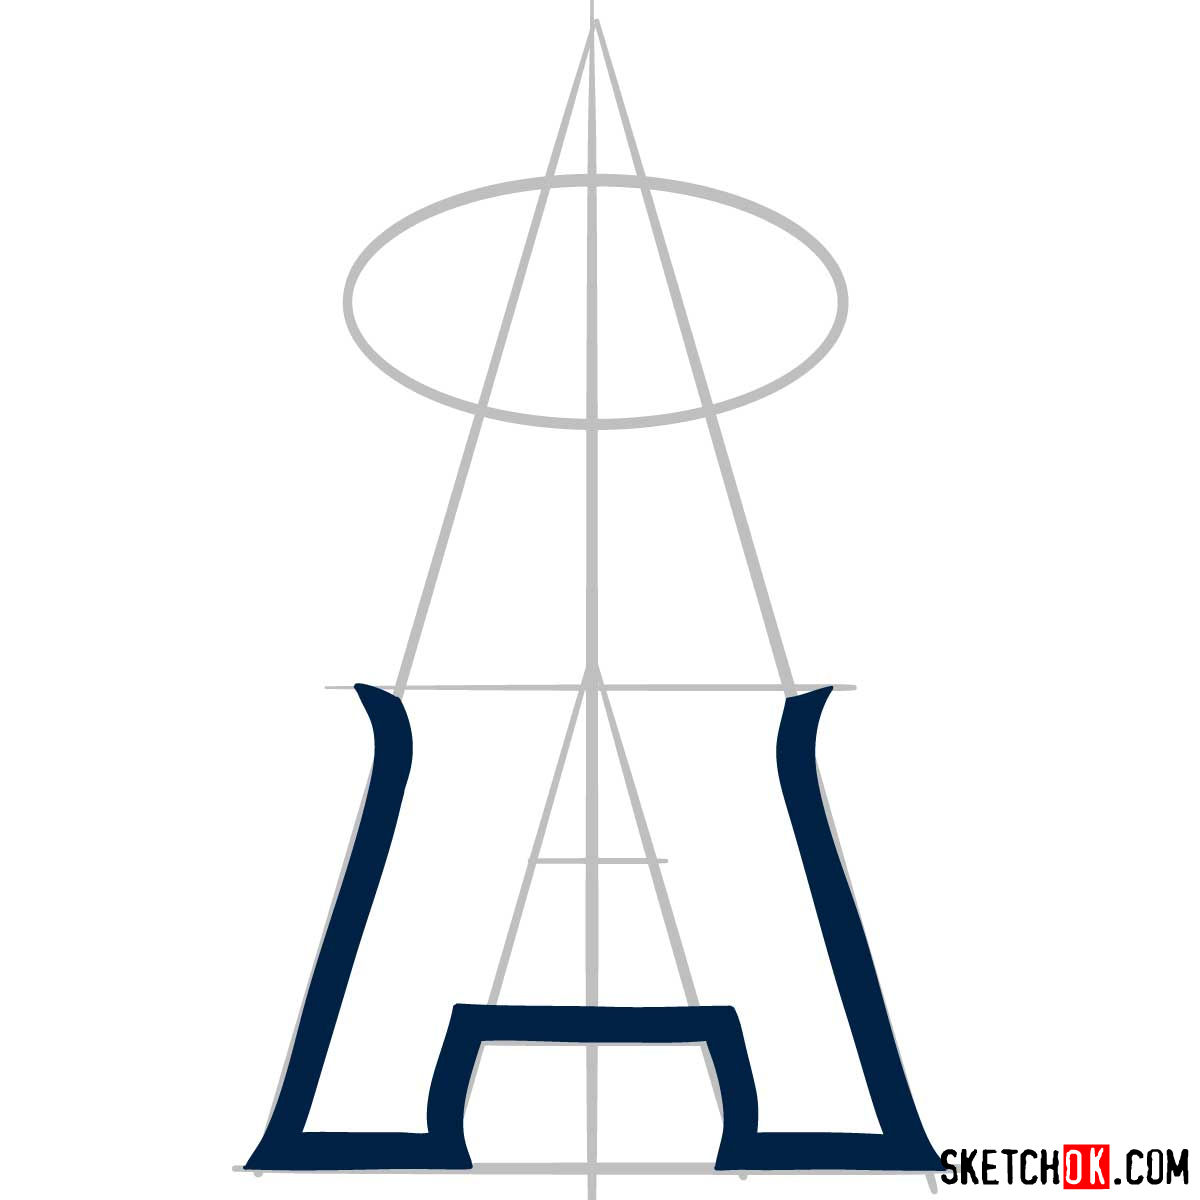 How to draw Los Angeles Angels logo | MLB logos - step 03